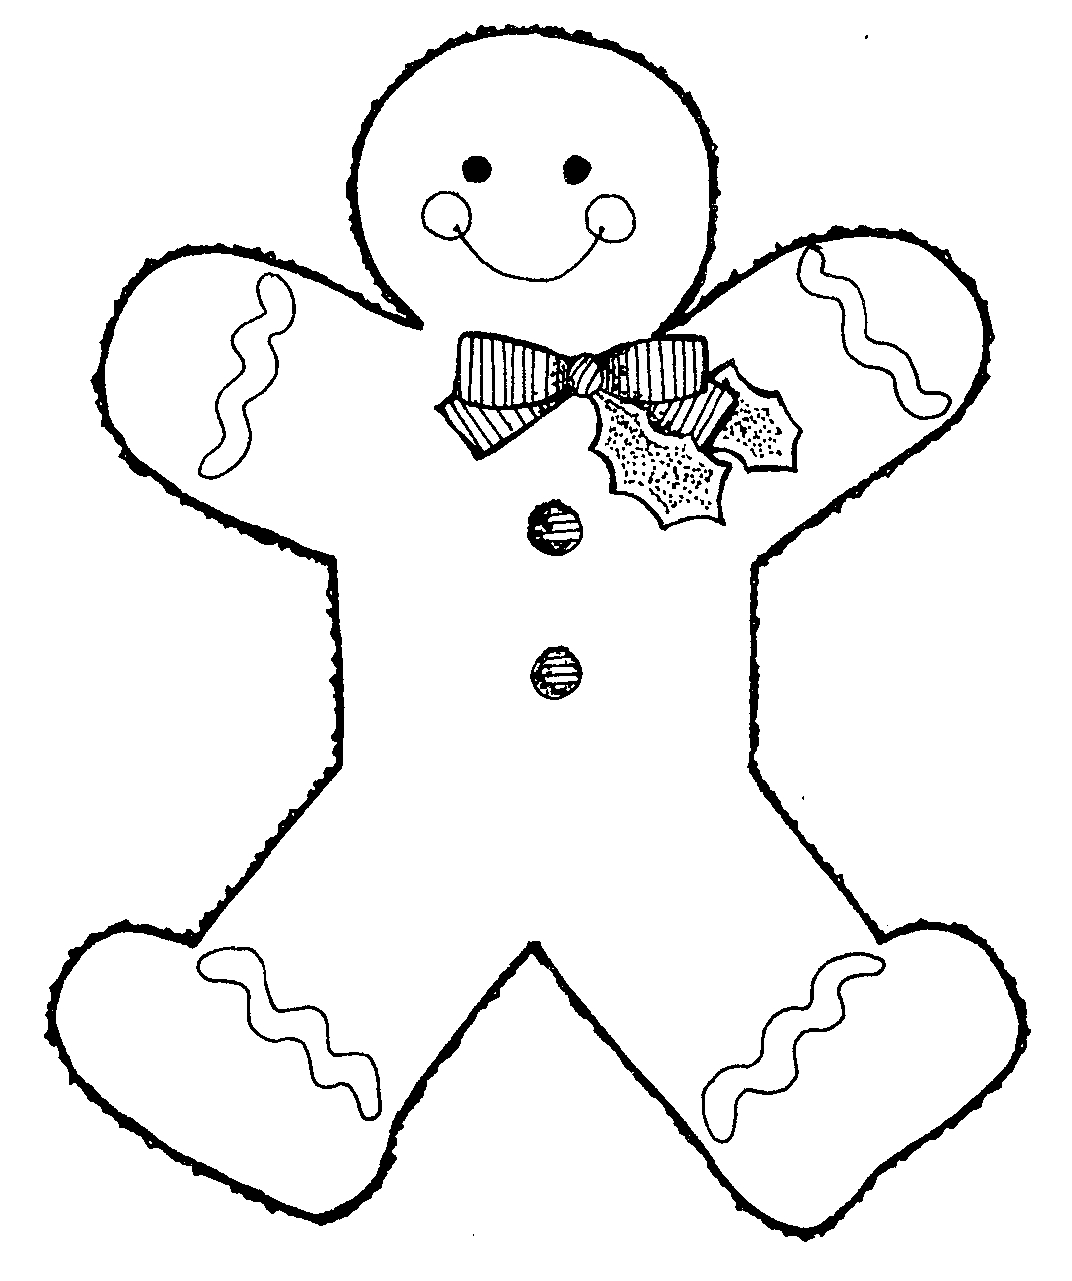 1072x1281 Free Printable Gingerbread Man Coloring Pages For Kids